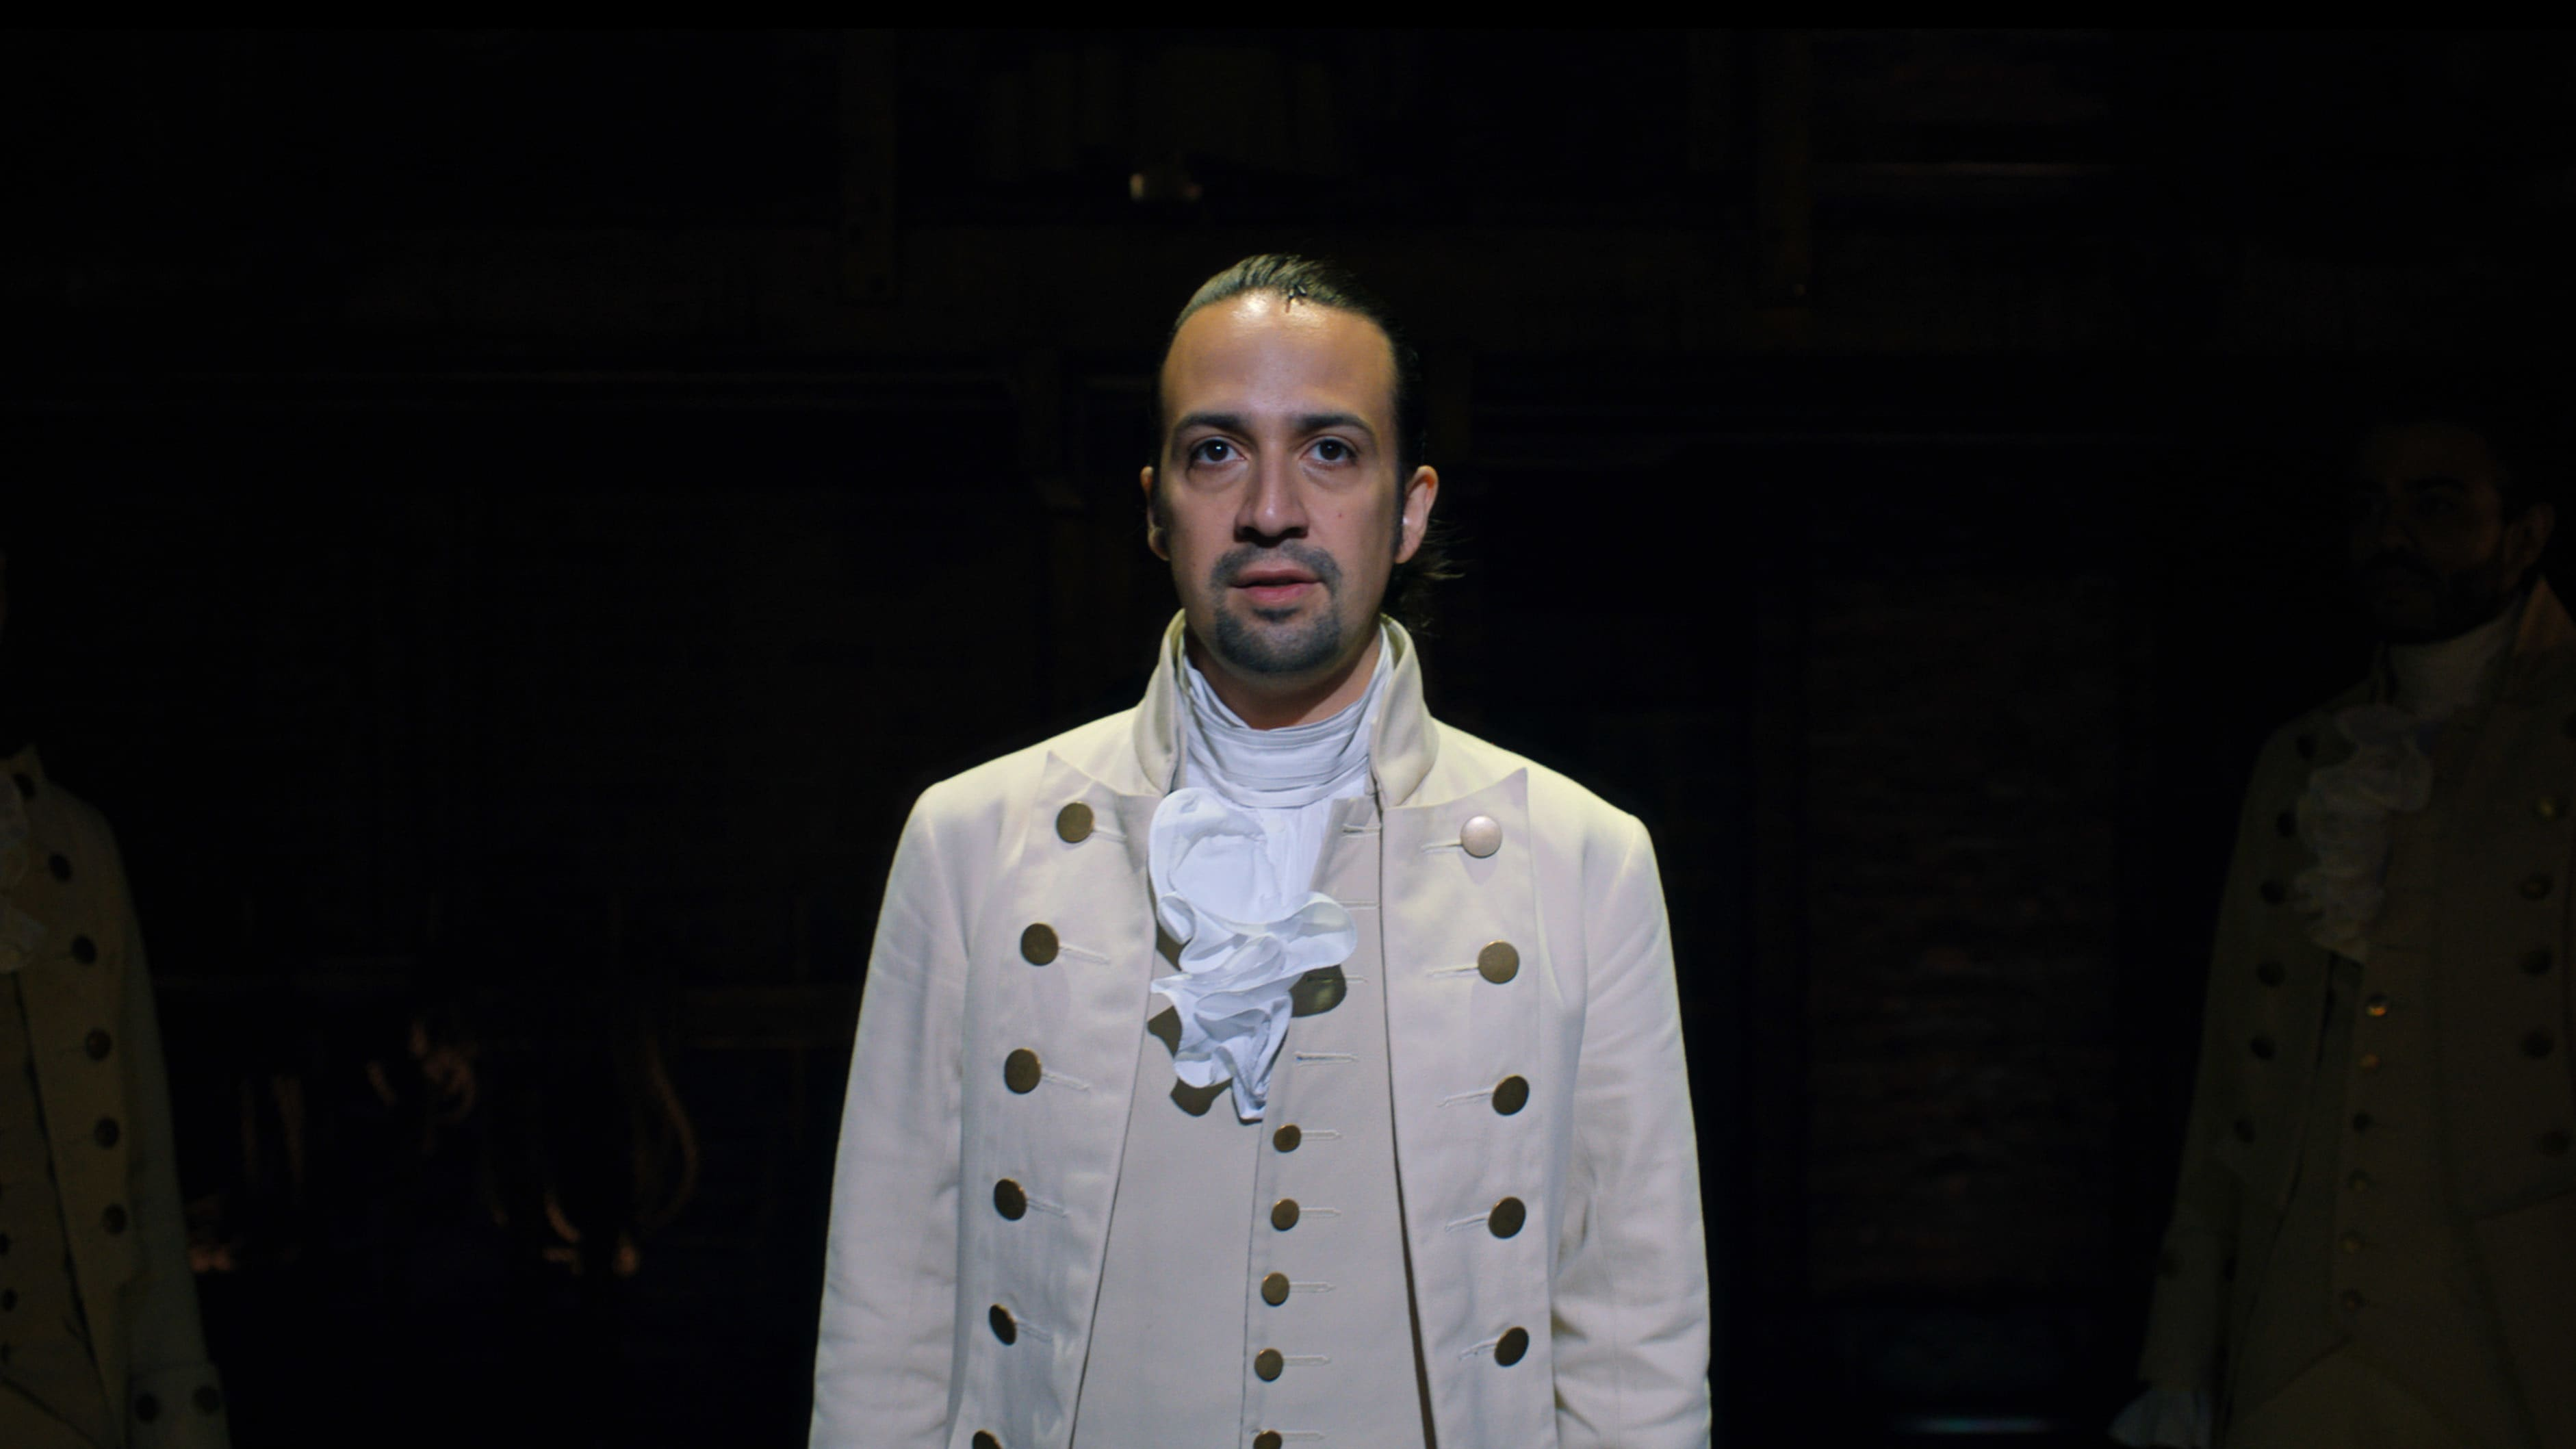 This New Trailer for Disney+'s Hamilton Will Put You In The Room Where It Happened